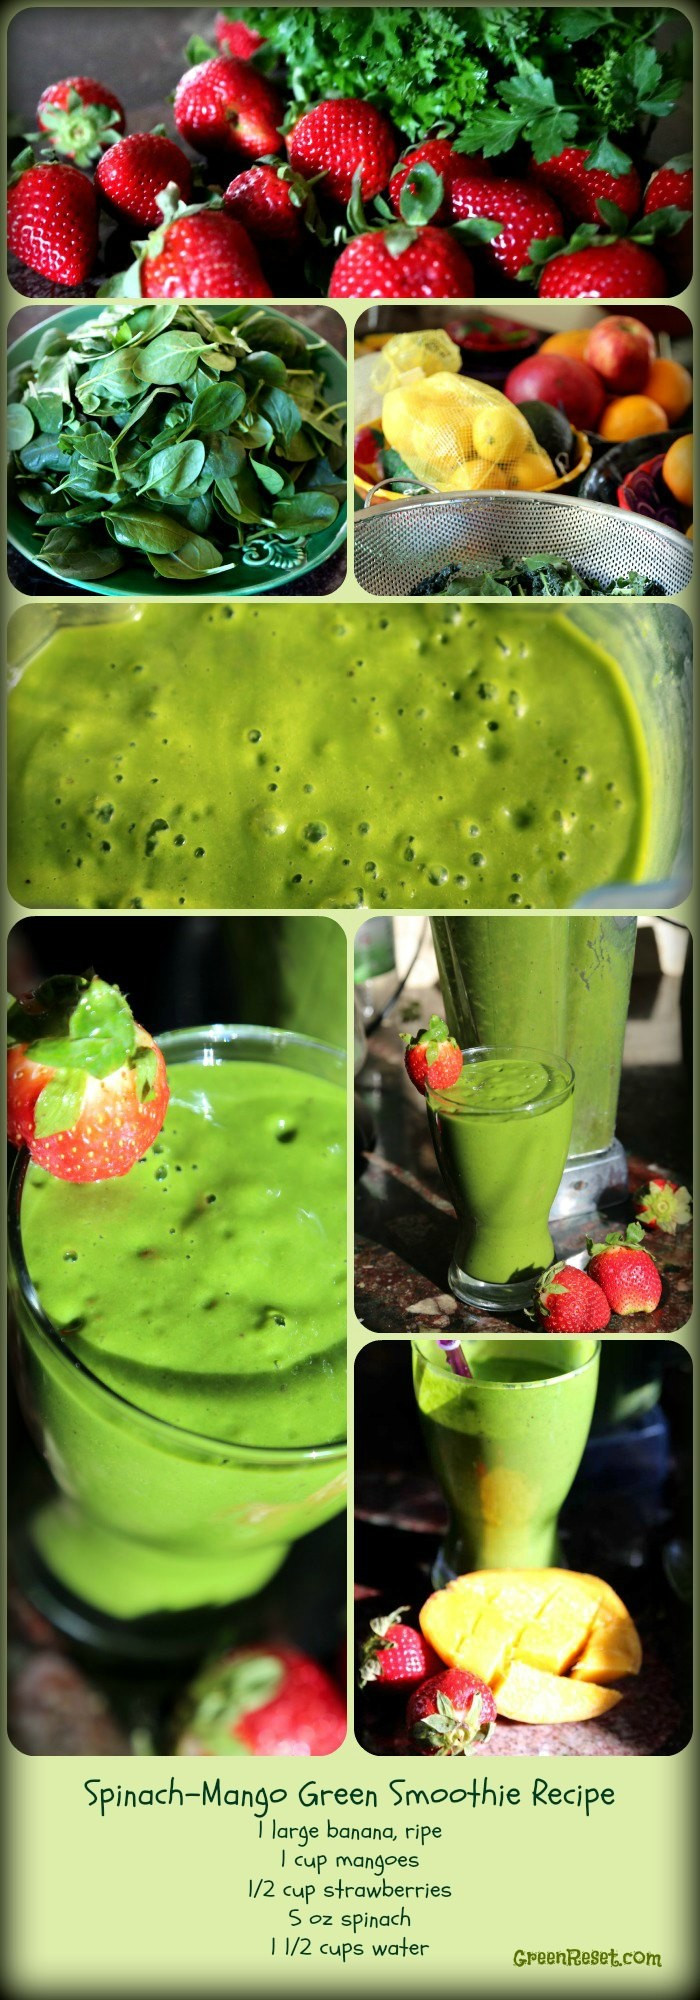 Healthy Smoothie Recipes For Breakfast  9 Breakfast Smoothies Plus 3 More Super Healthy Breakfast